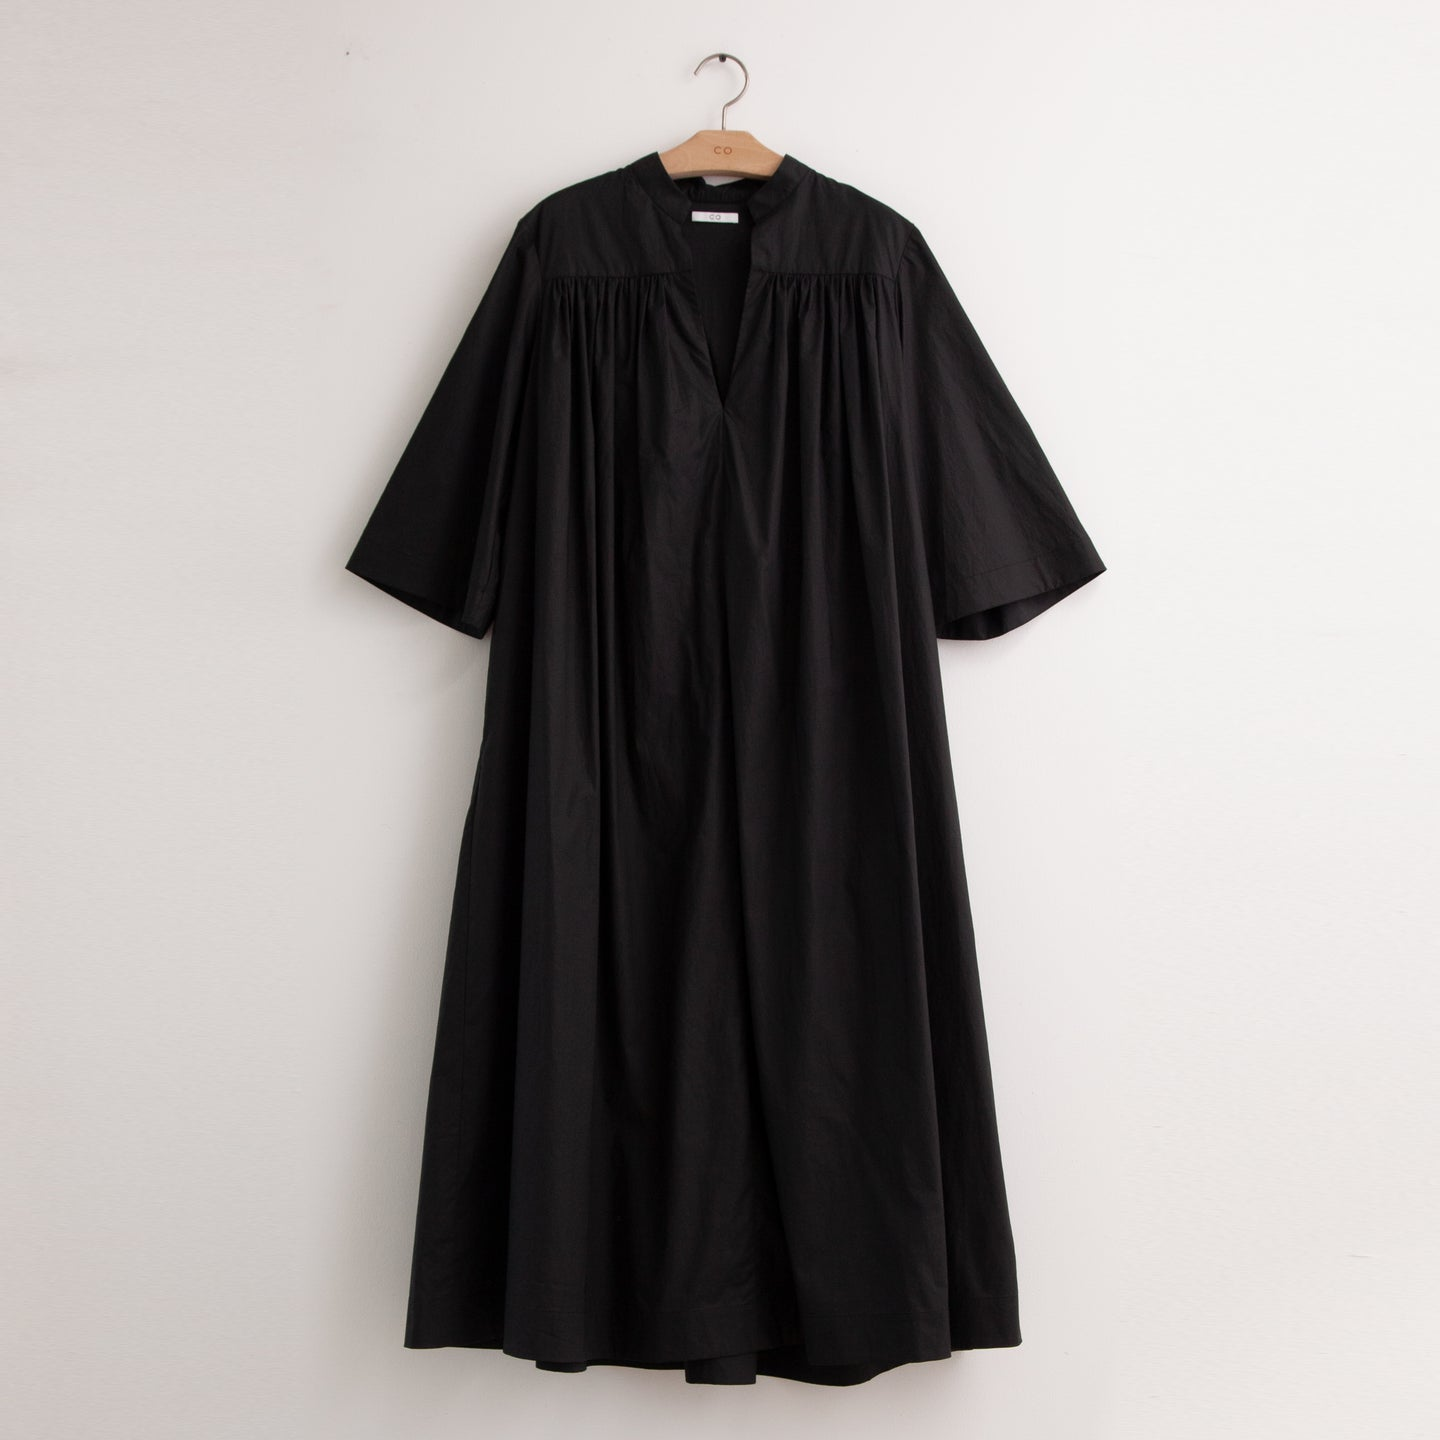 Oversized v neck shirt dress with yolk gather in black cotton poplin - CO